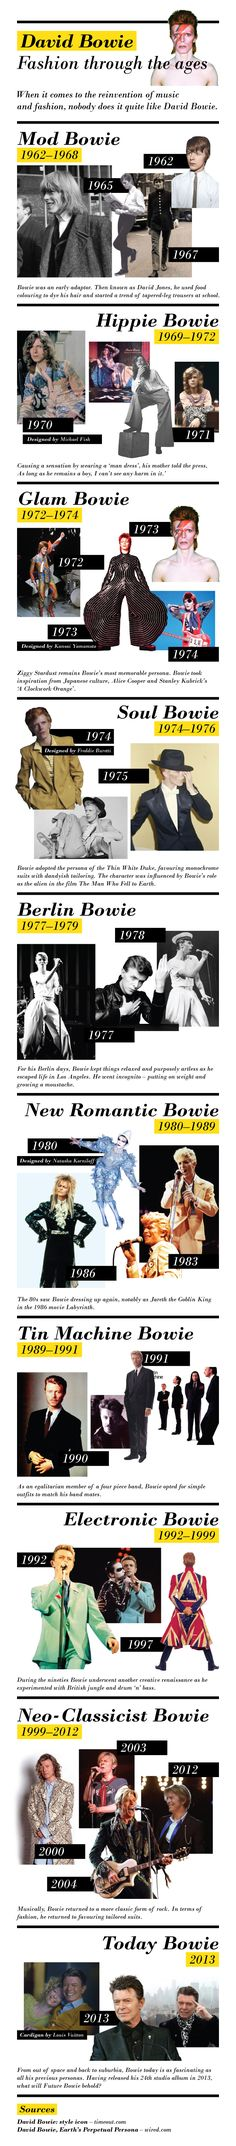 Fashion Icon | David Bowie Style Through the Decades: From Mod & Glam to Neo Classicist. Ally.....